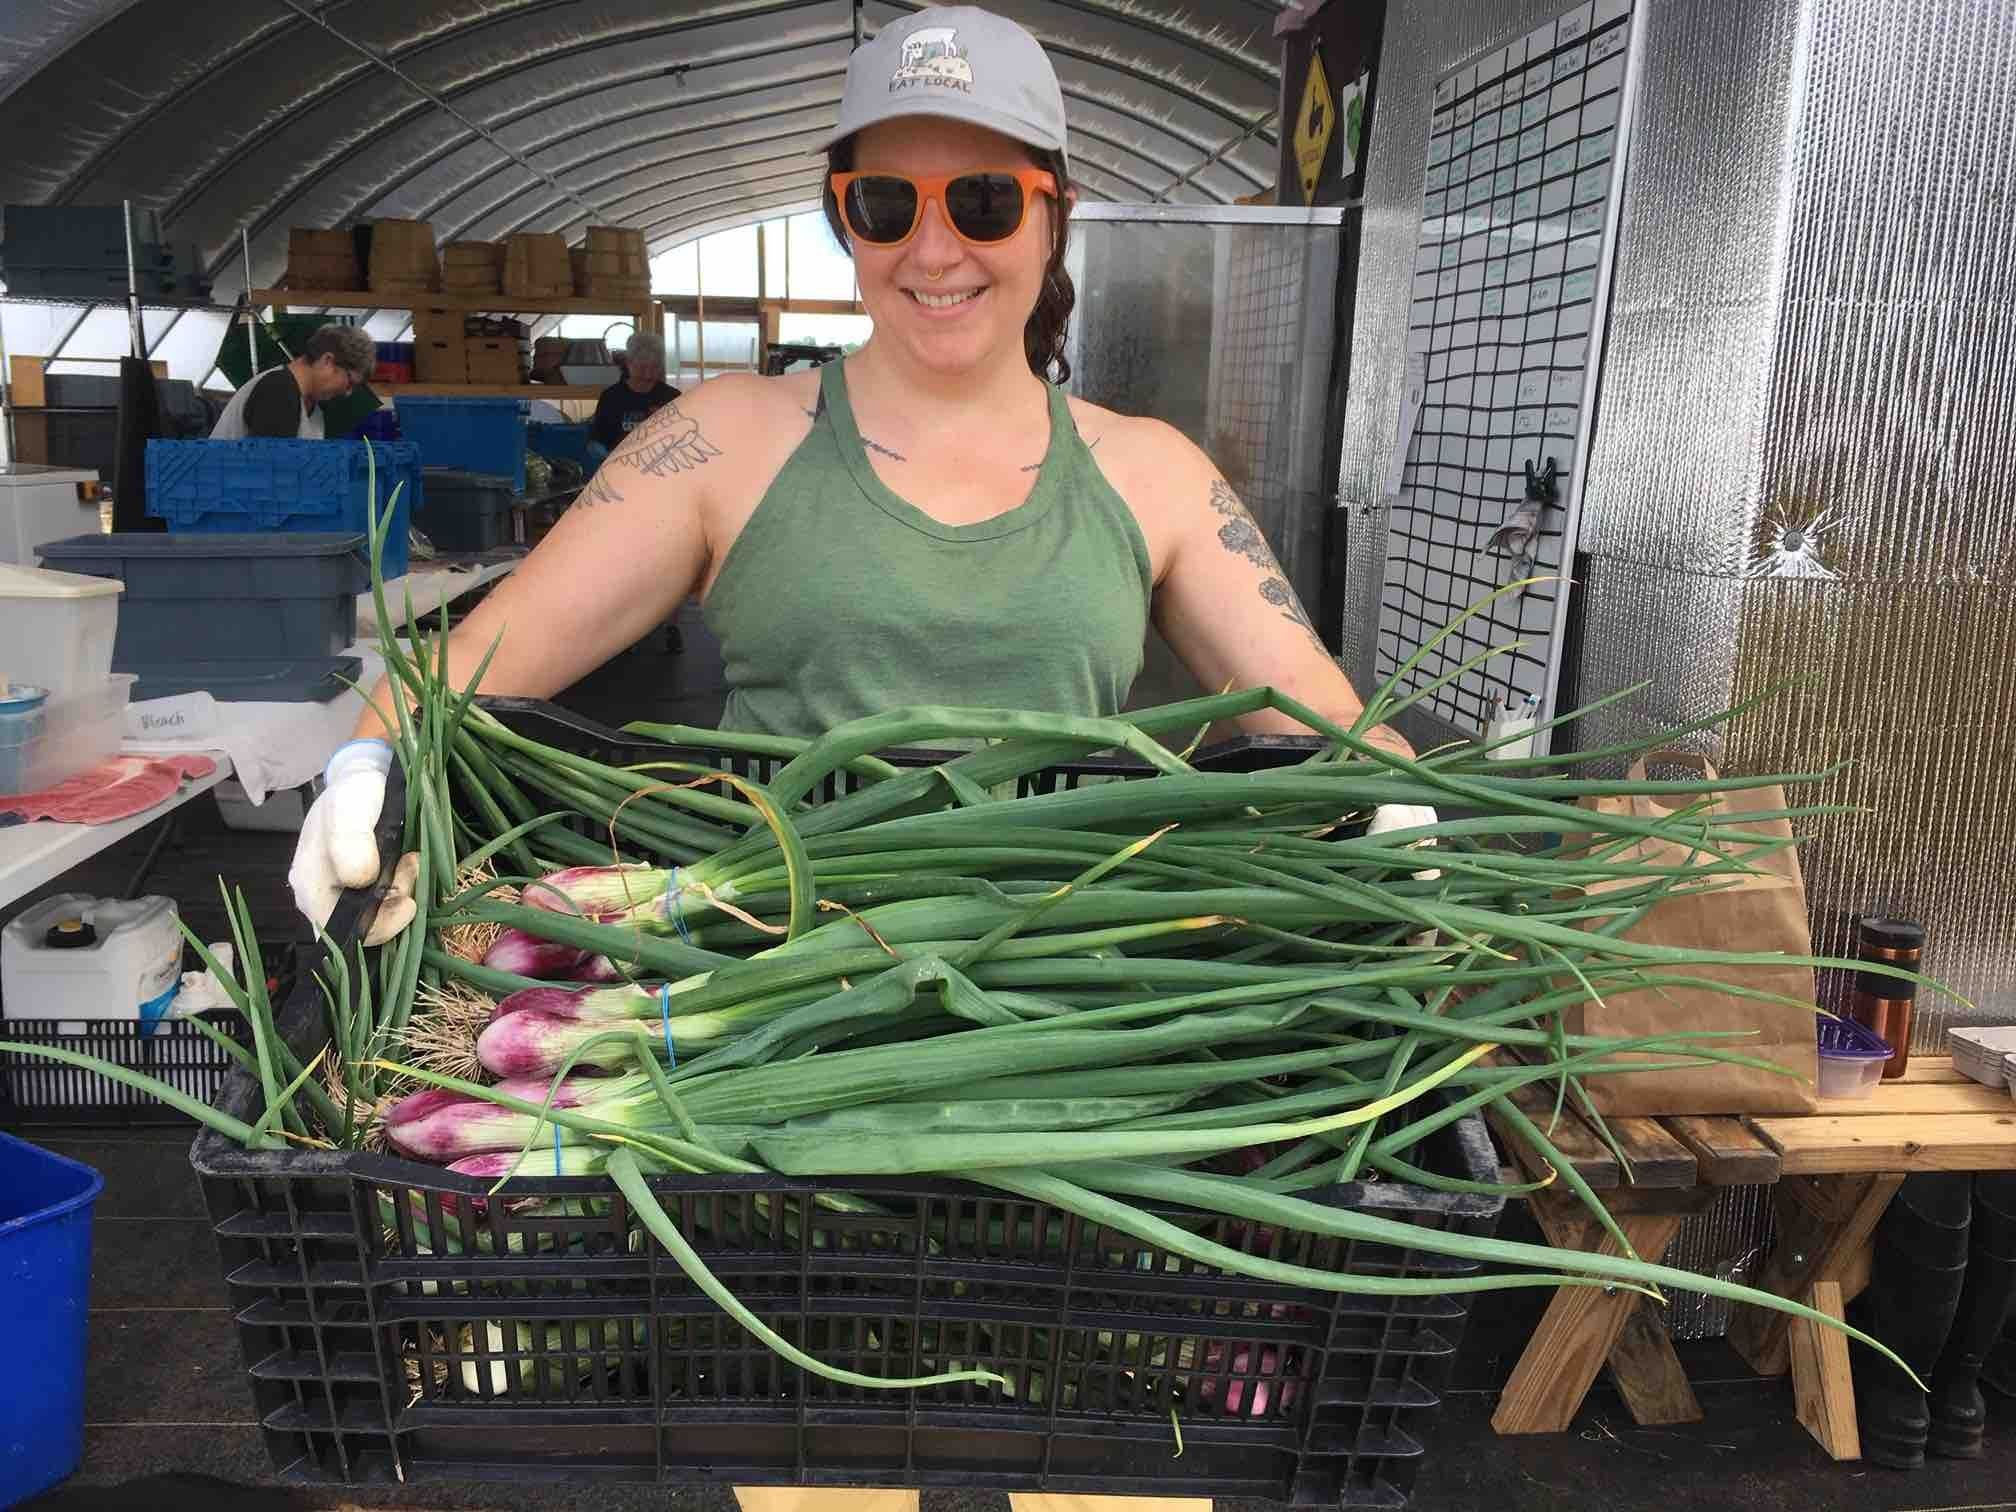 Previous Happening: The Faces Behind the Food:  Keepin' it Fresh with Amelia